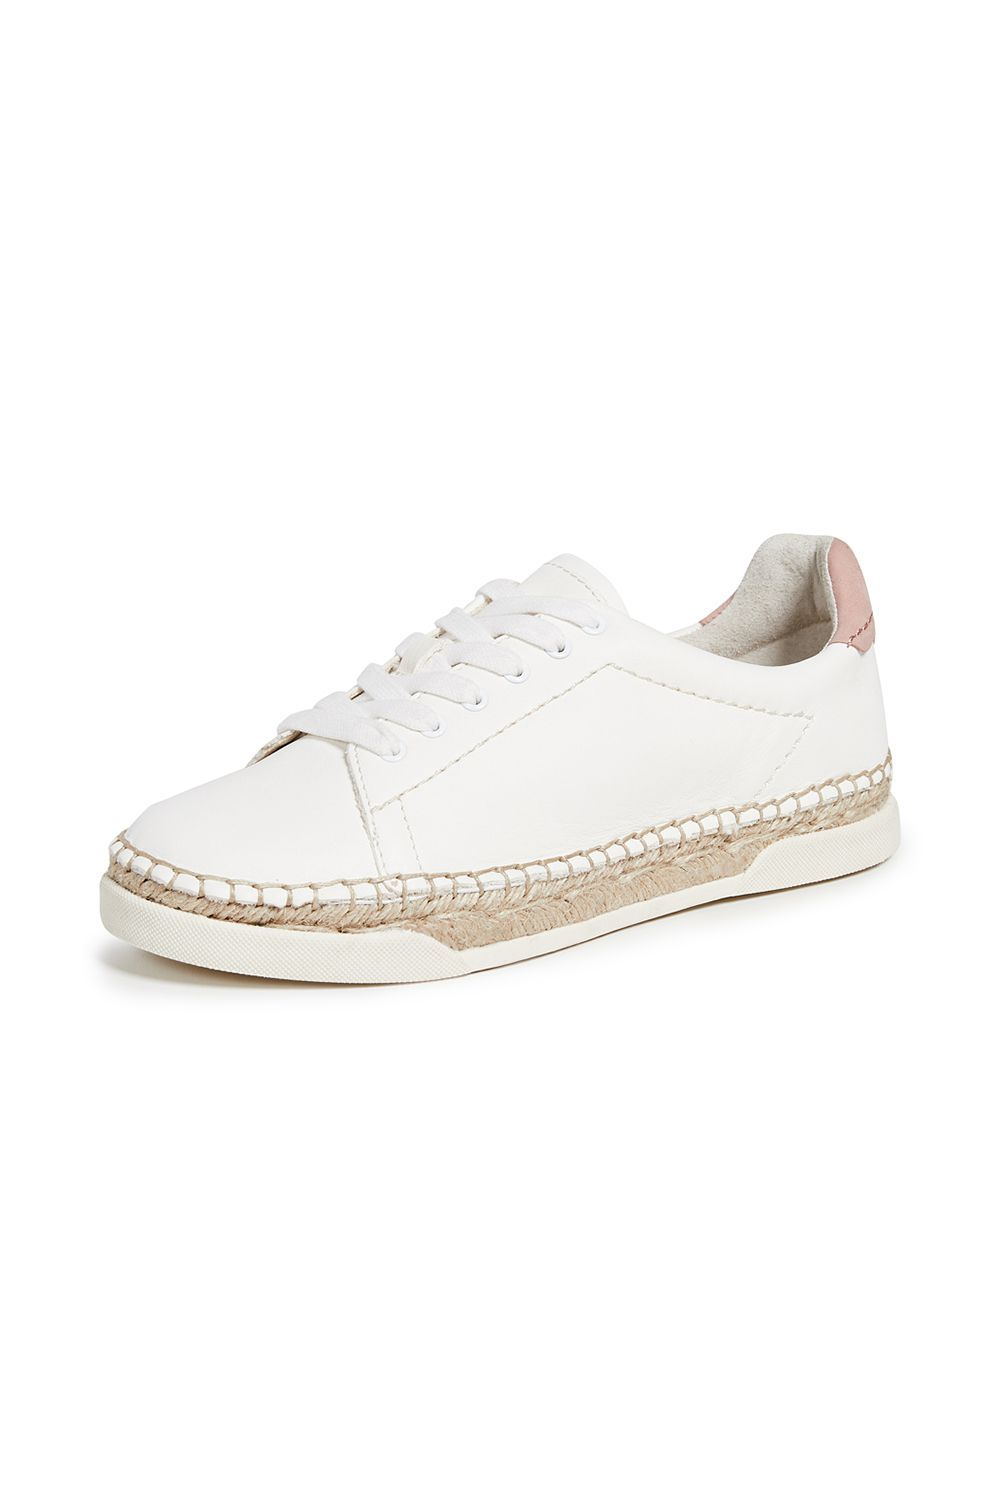 Madox Lace Up Espadrilles Dolce Vita shopbop.com $120.00 SHOP IT For sneakers that work for summer, I present to you these espadrilles. The esparto rope gives this leather shoe a casual and laidback vibe, whether you wear this on the street or to the beach.